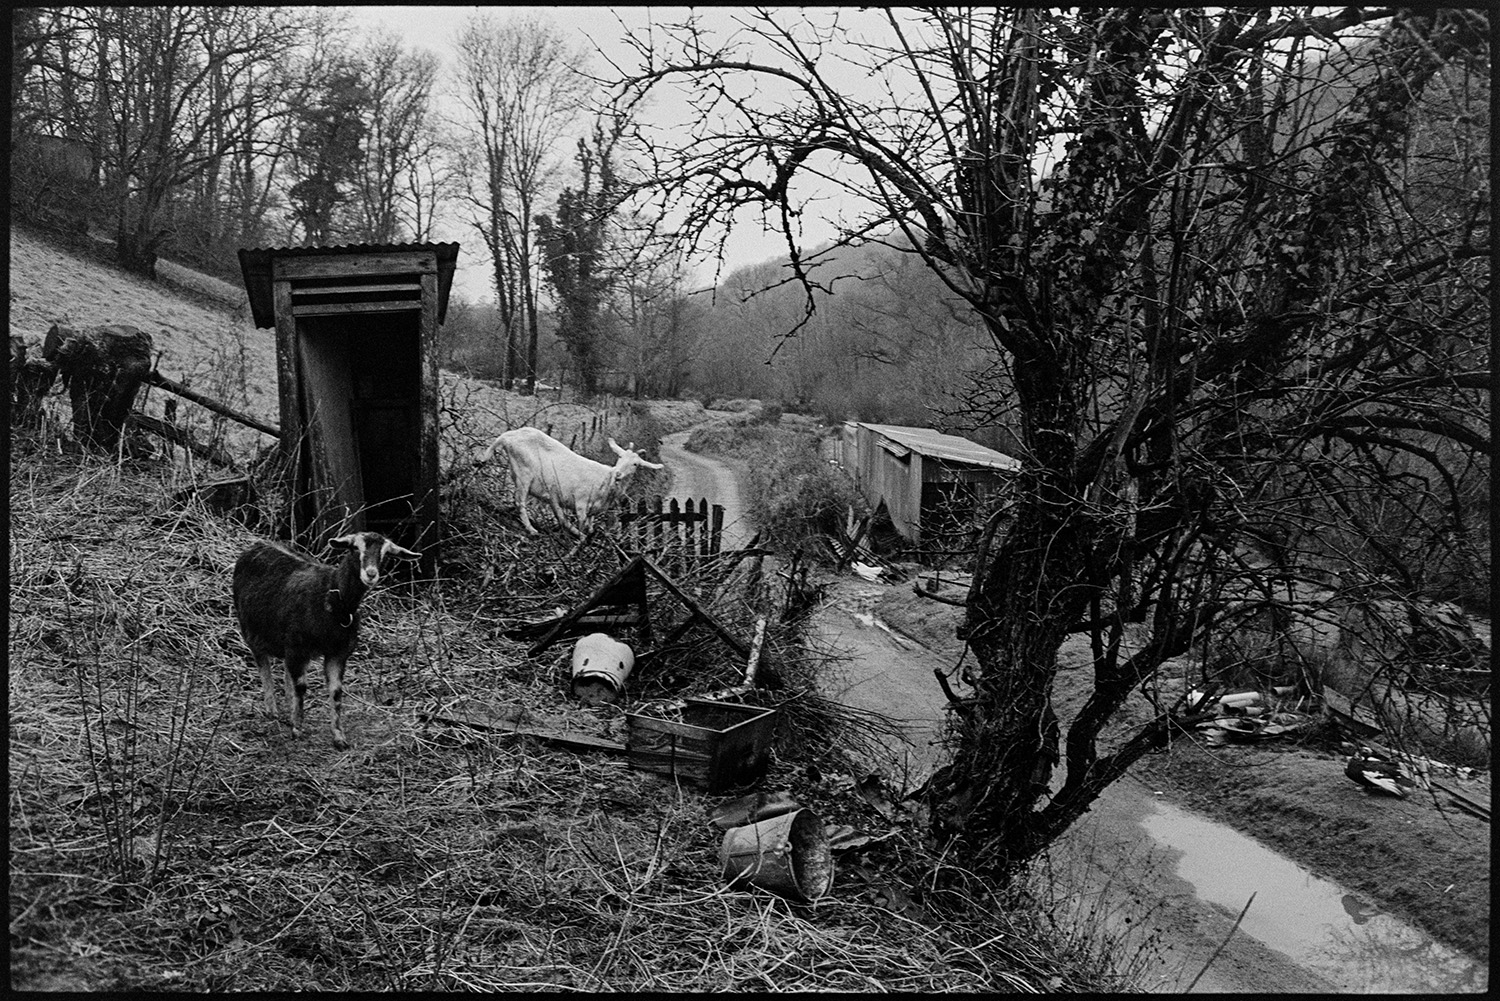 Outside toilet, lavatory with goats. <br /> [Two goats by an outside toilet at Millhams, Dolton. The toilet is wooden with a corrugated iron roof and is located on a bank by the side of a road.]